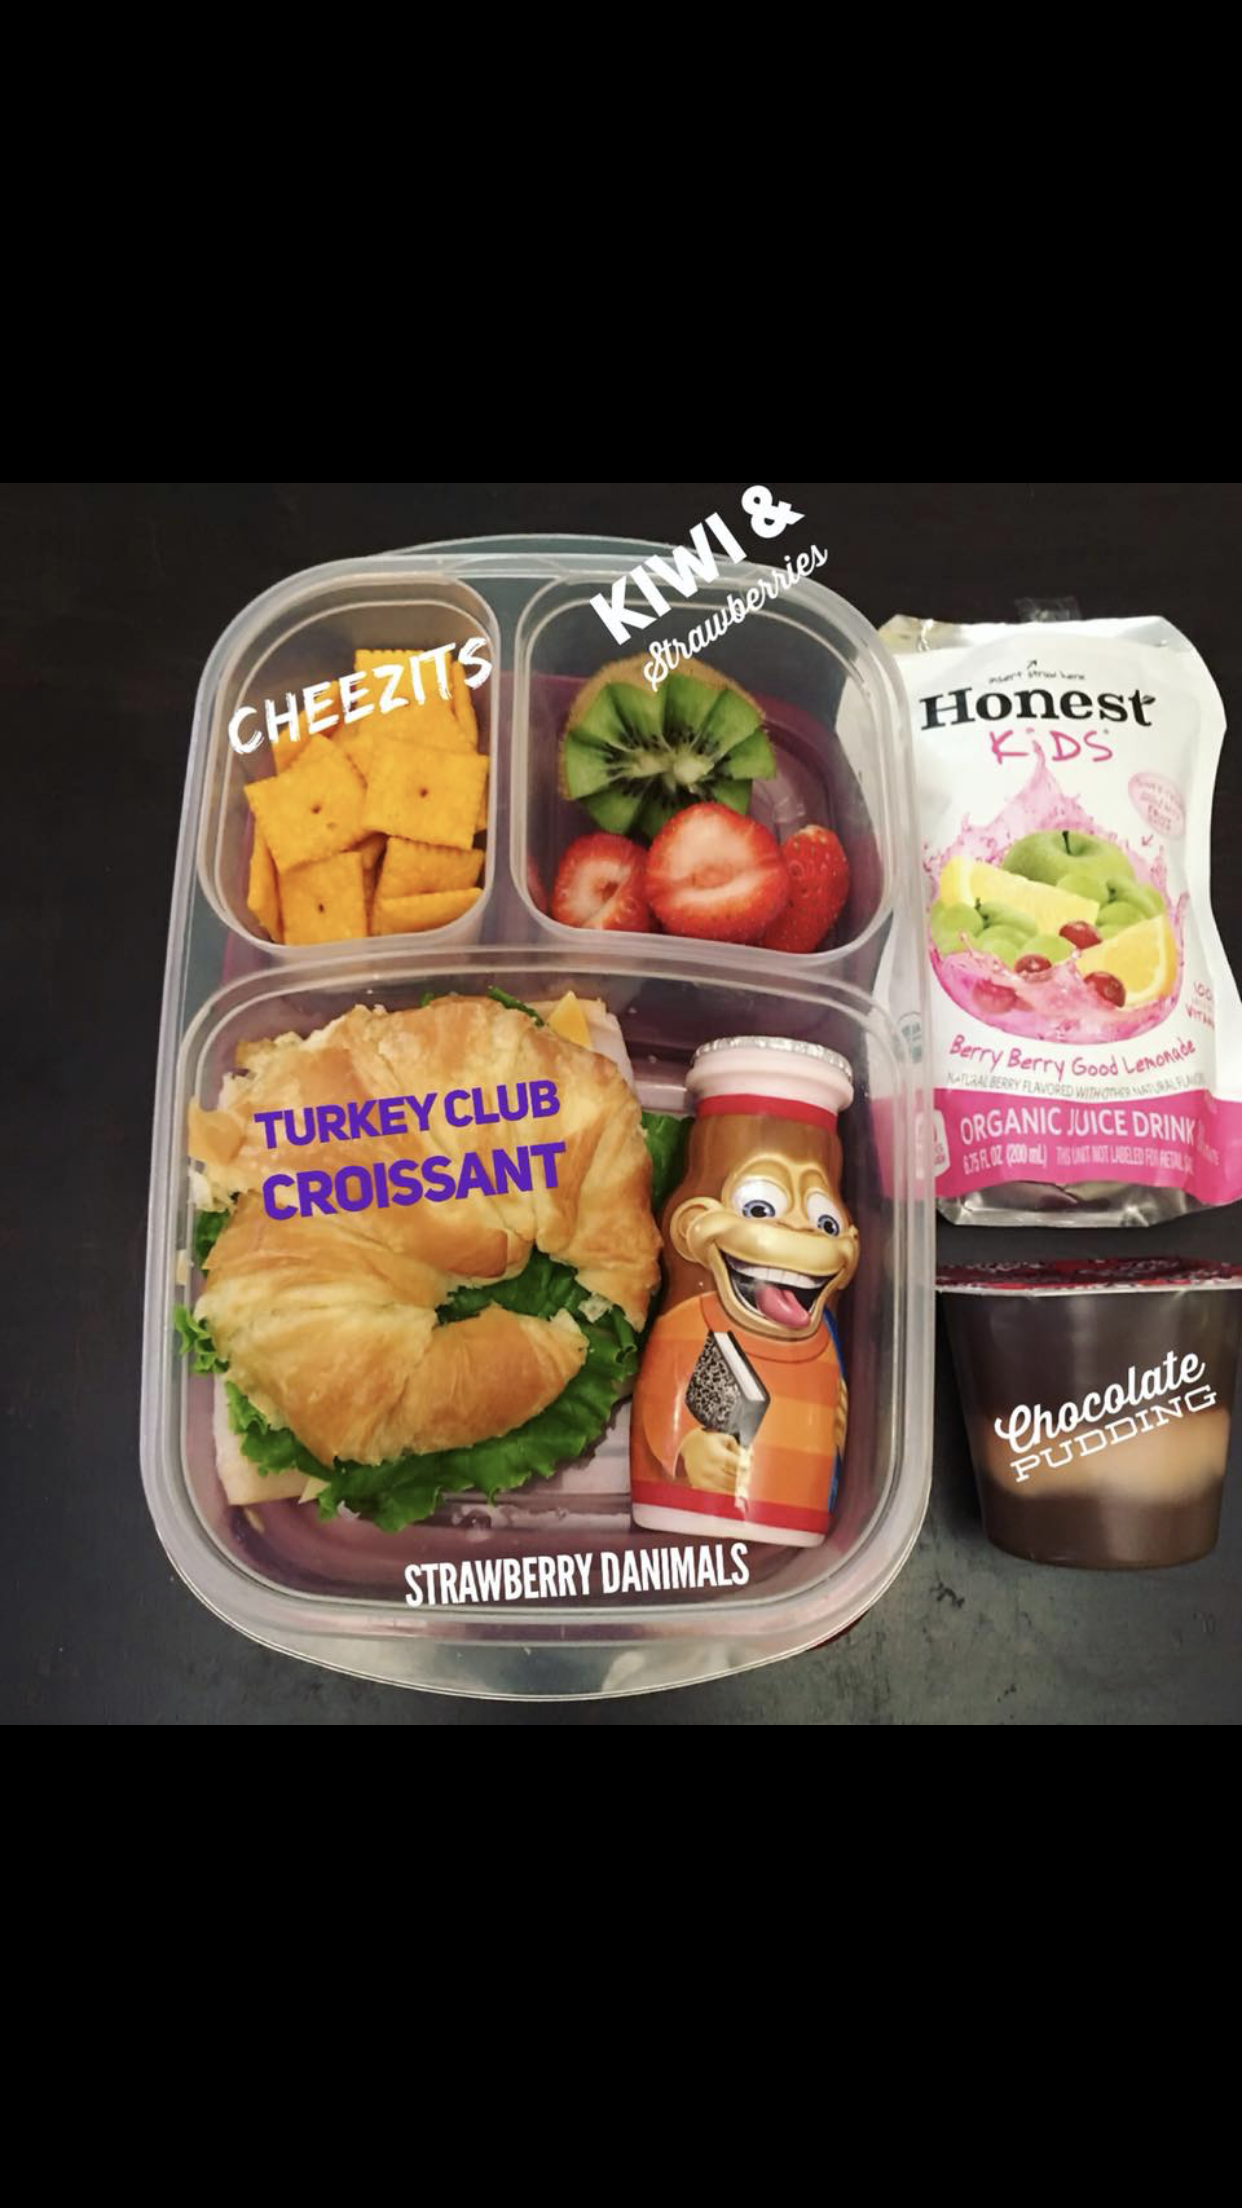 Pin By Latosha Pirshin On Packed Lunch Ideas Kids Packed Lunch Kiwi Berries Yummy Food